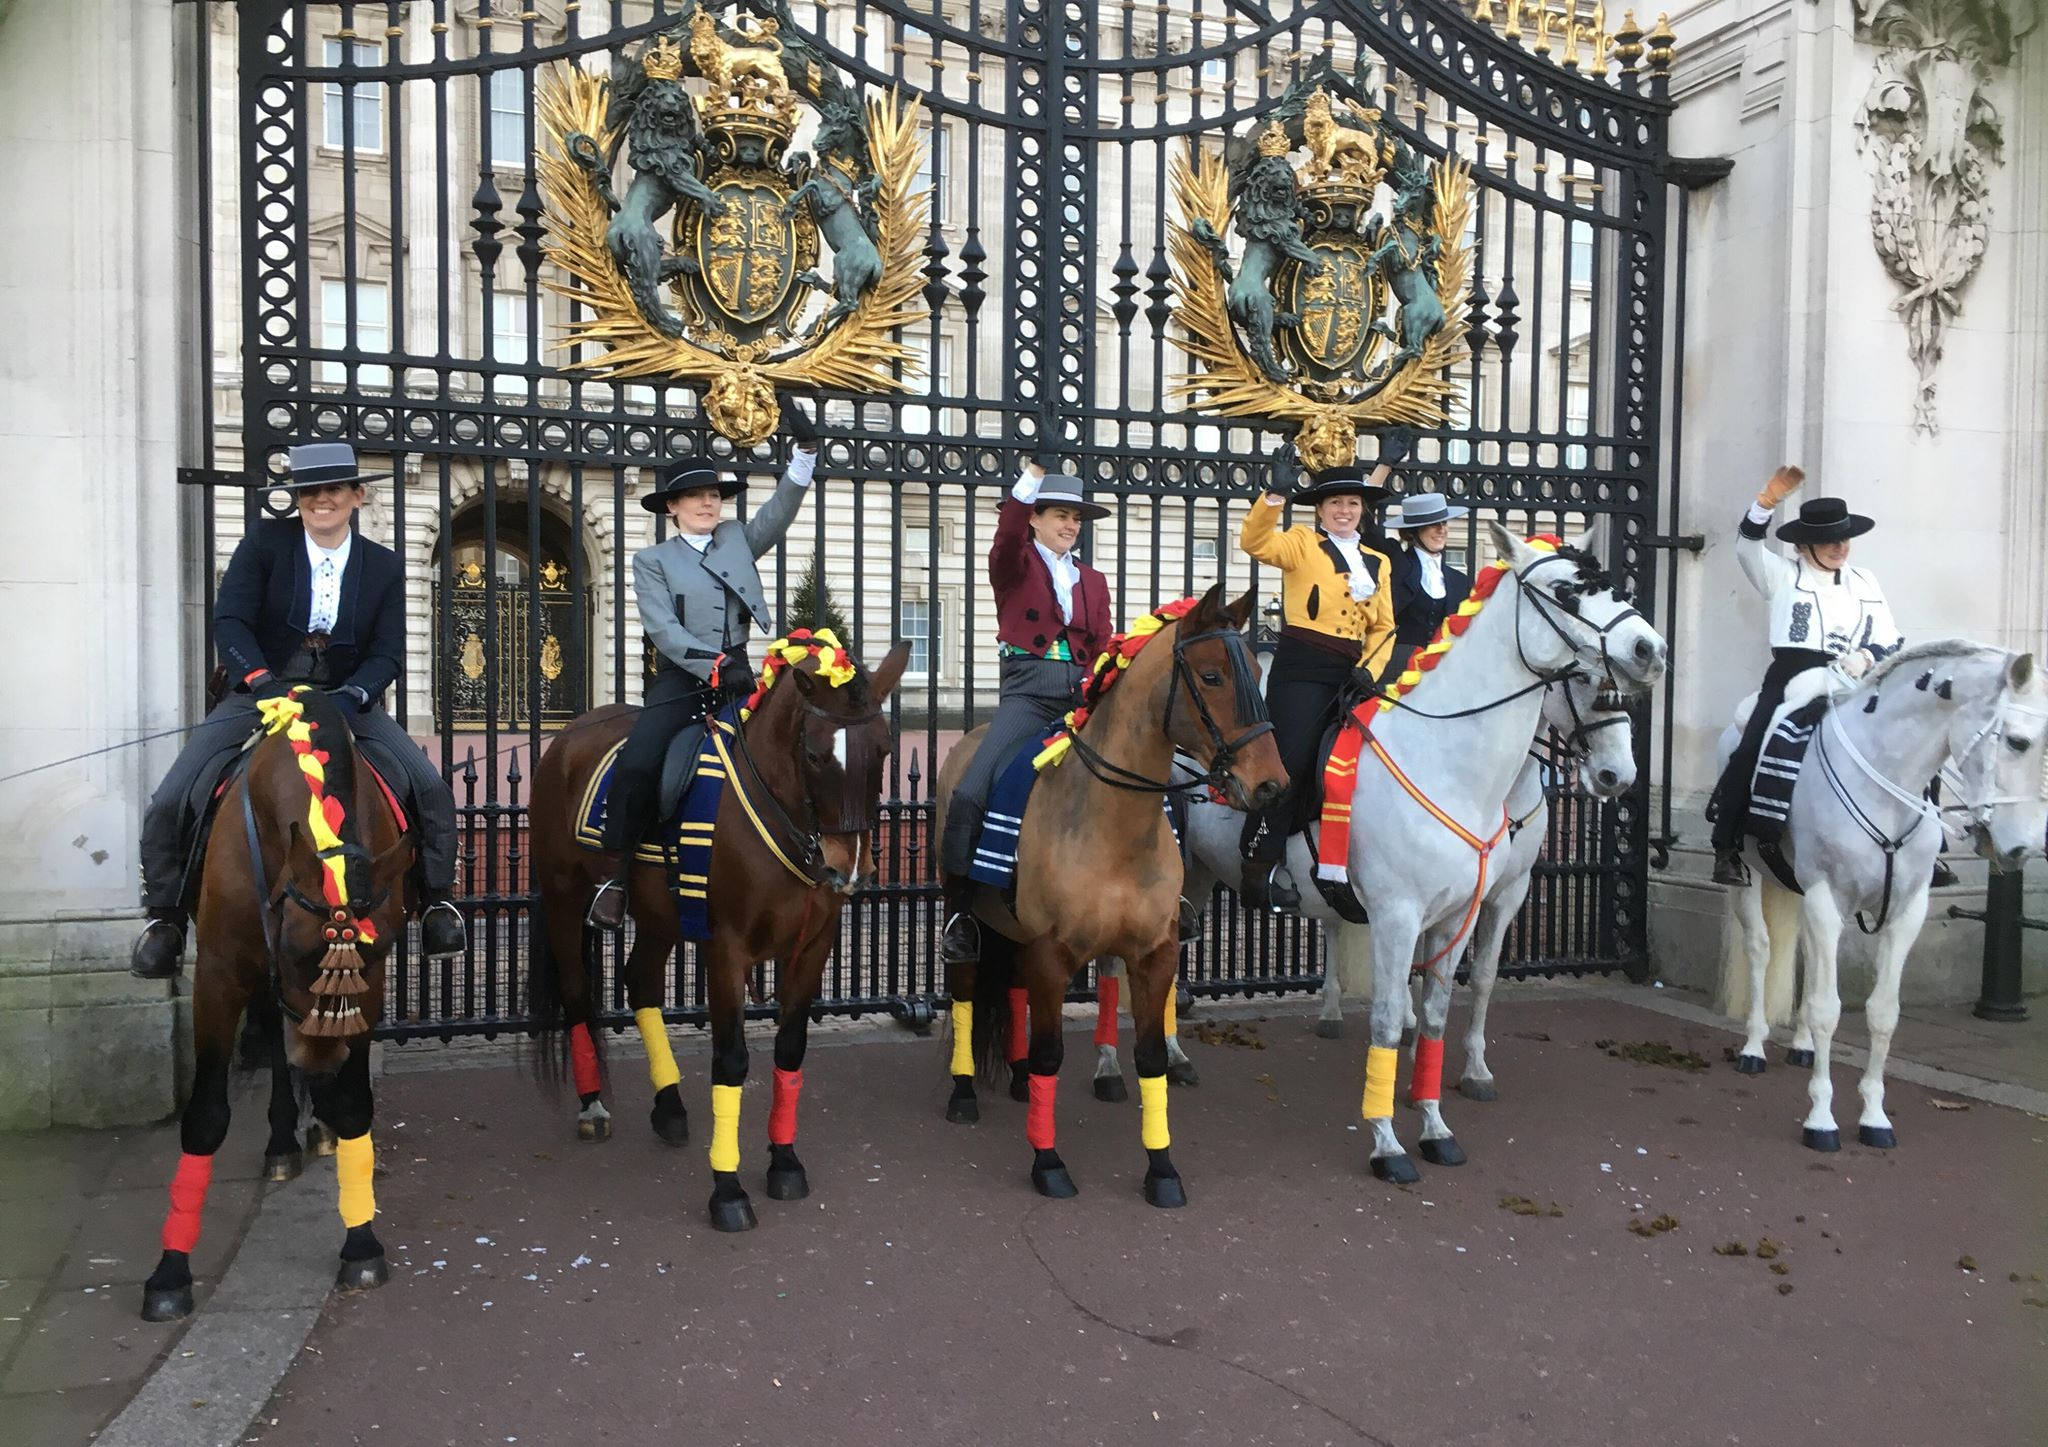 New Years Parade 2019 buckingham palace